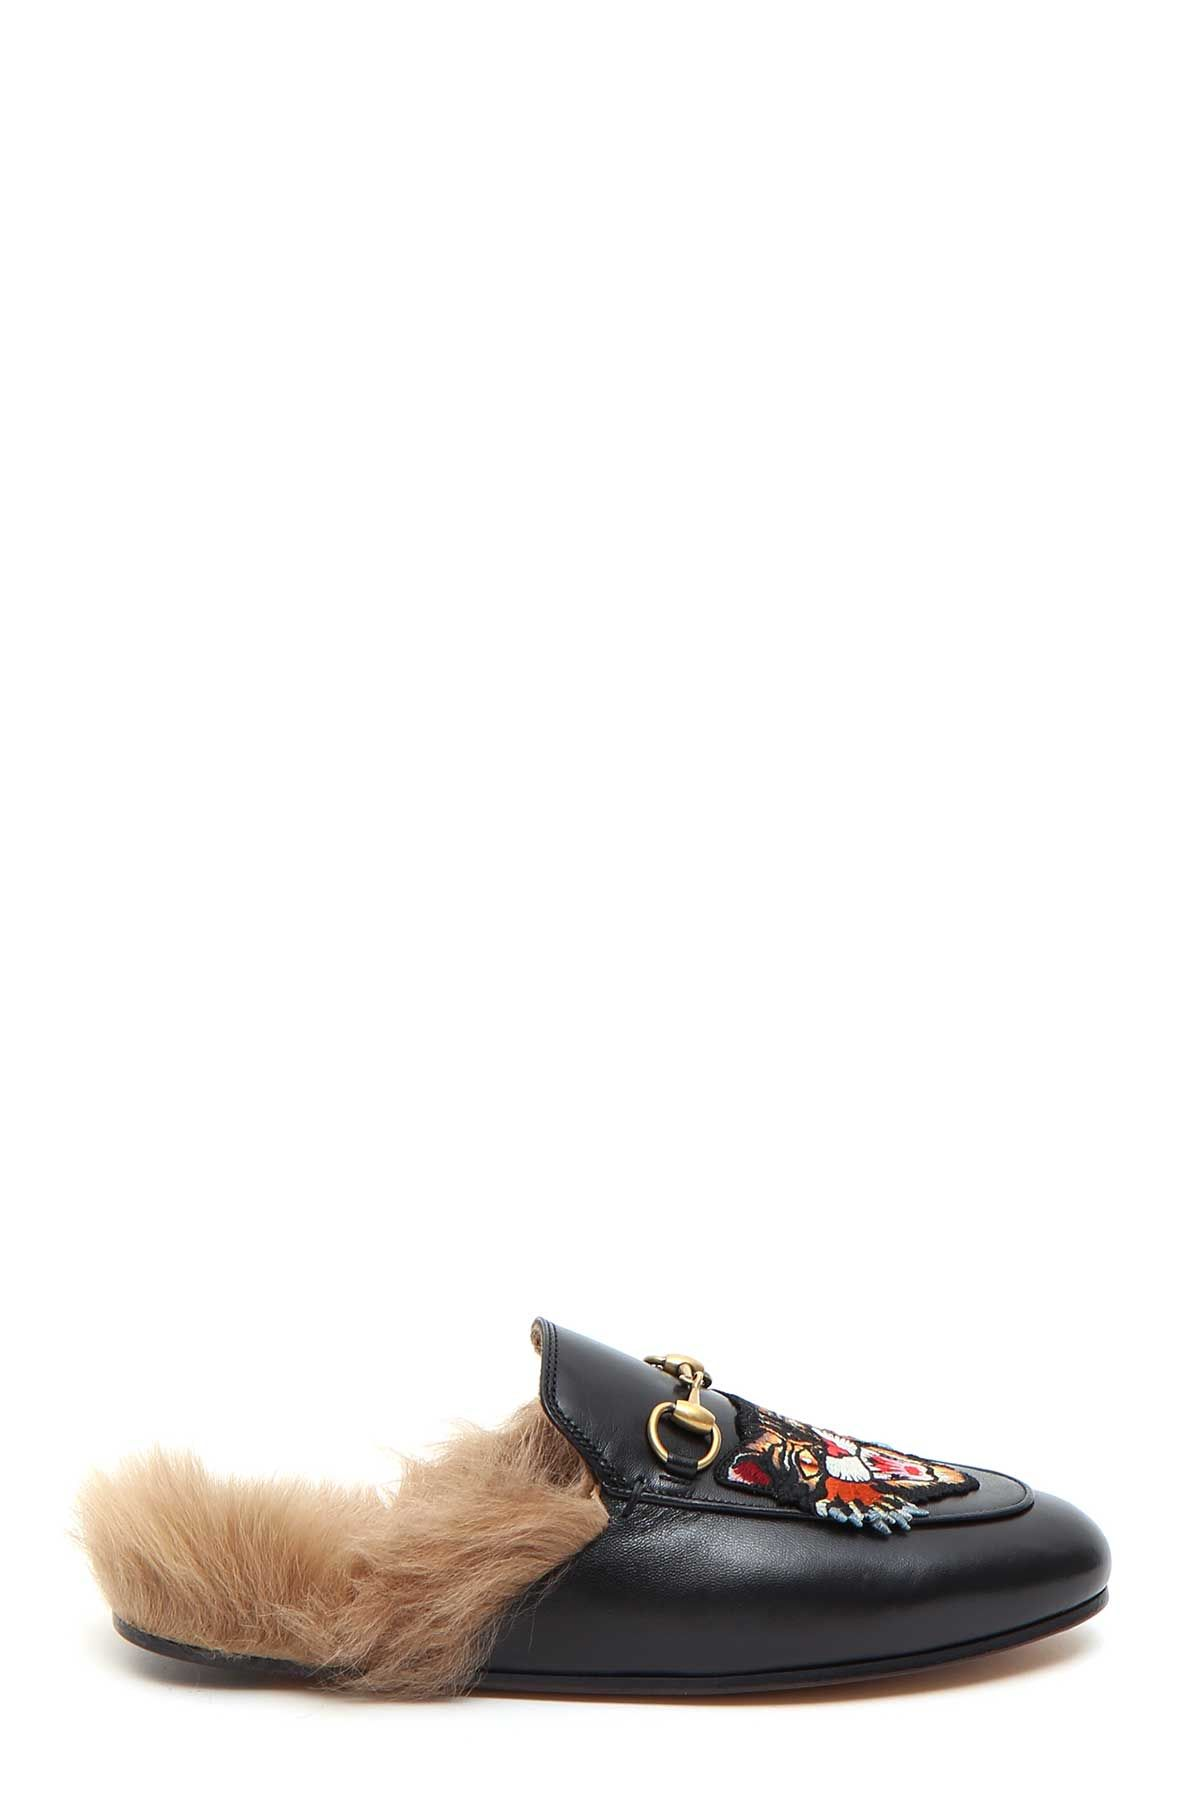 Gucci Angrycat Patch princetown Slipper